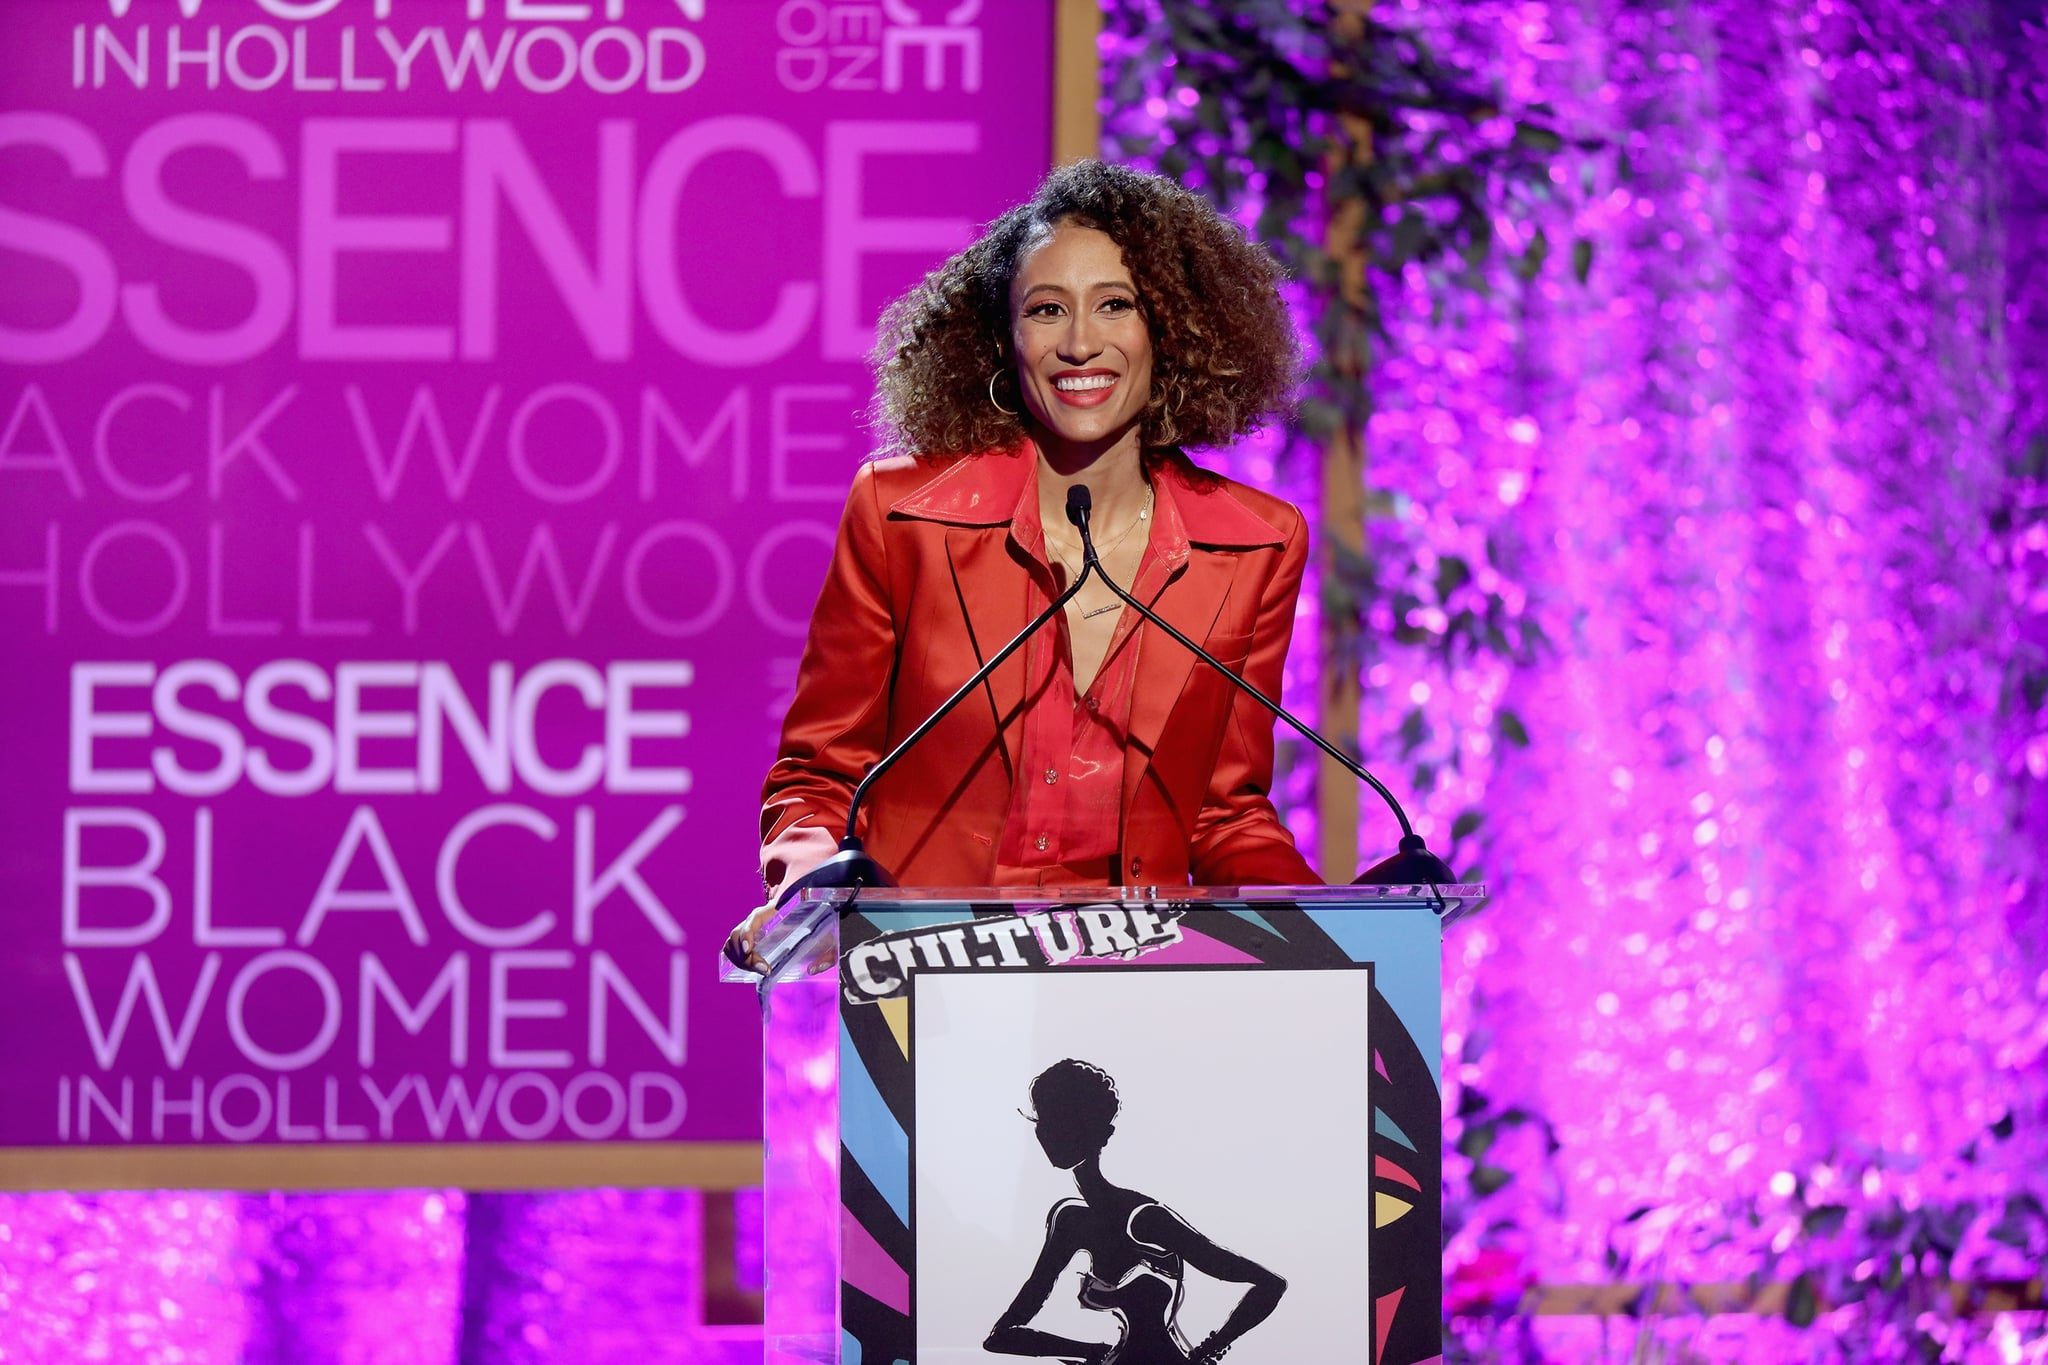 BEVERLY HILLS, CA - FEBRUARY 21:  Elaine Welteroth speaks onstage during the 2019 Essence Black Women in Hollywood Awards Luncheon at Regent Beverly Wilshire Hotel on February 21, 2019 in Los Angeles, California.  (Photo by Randy Shropshire/Getty Images for Essence)